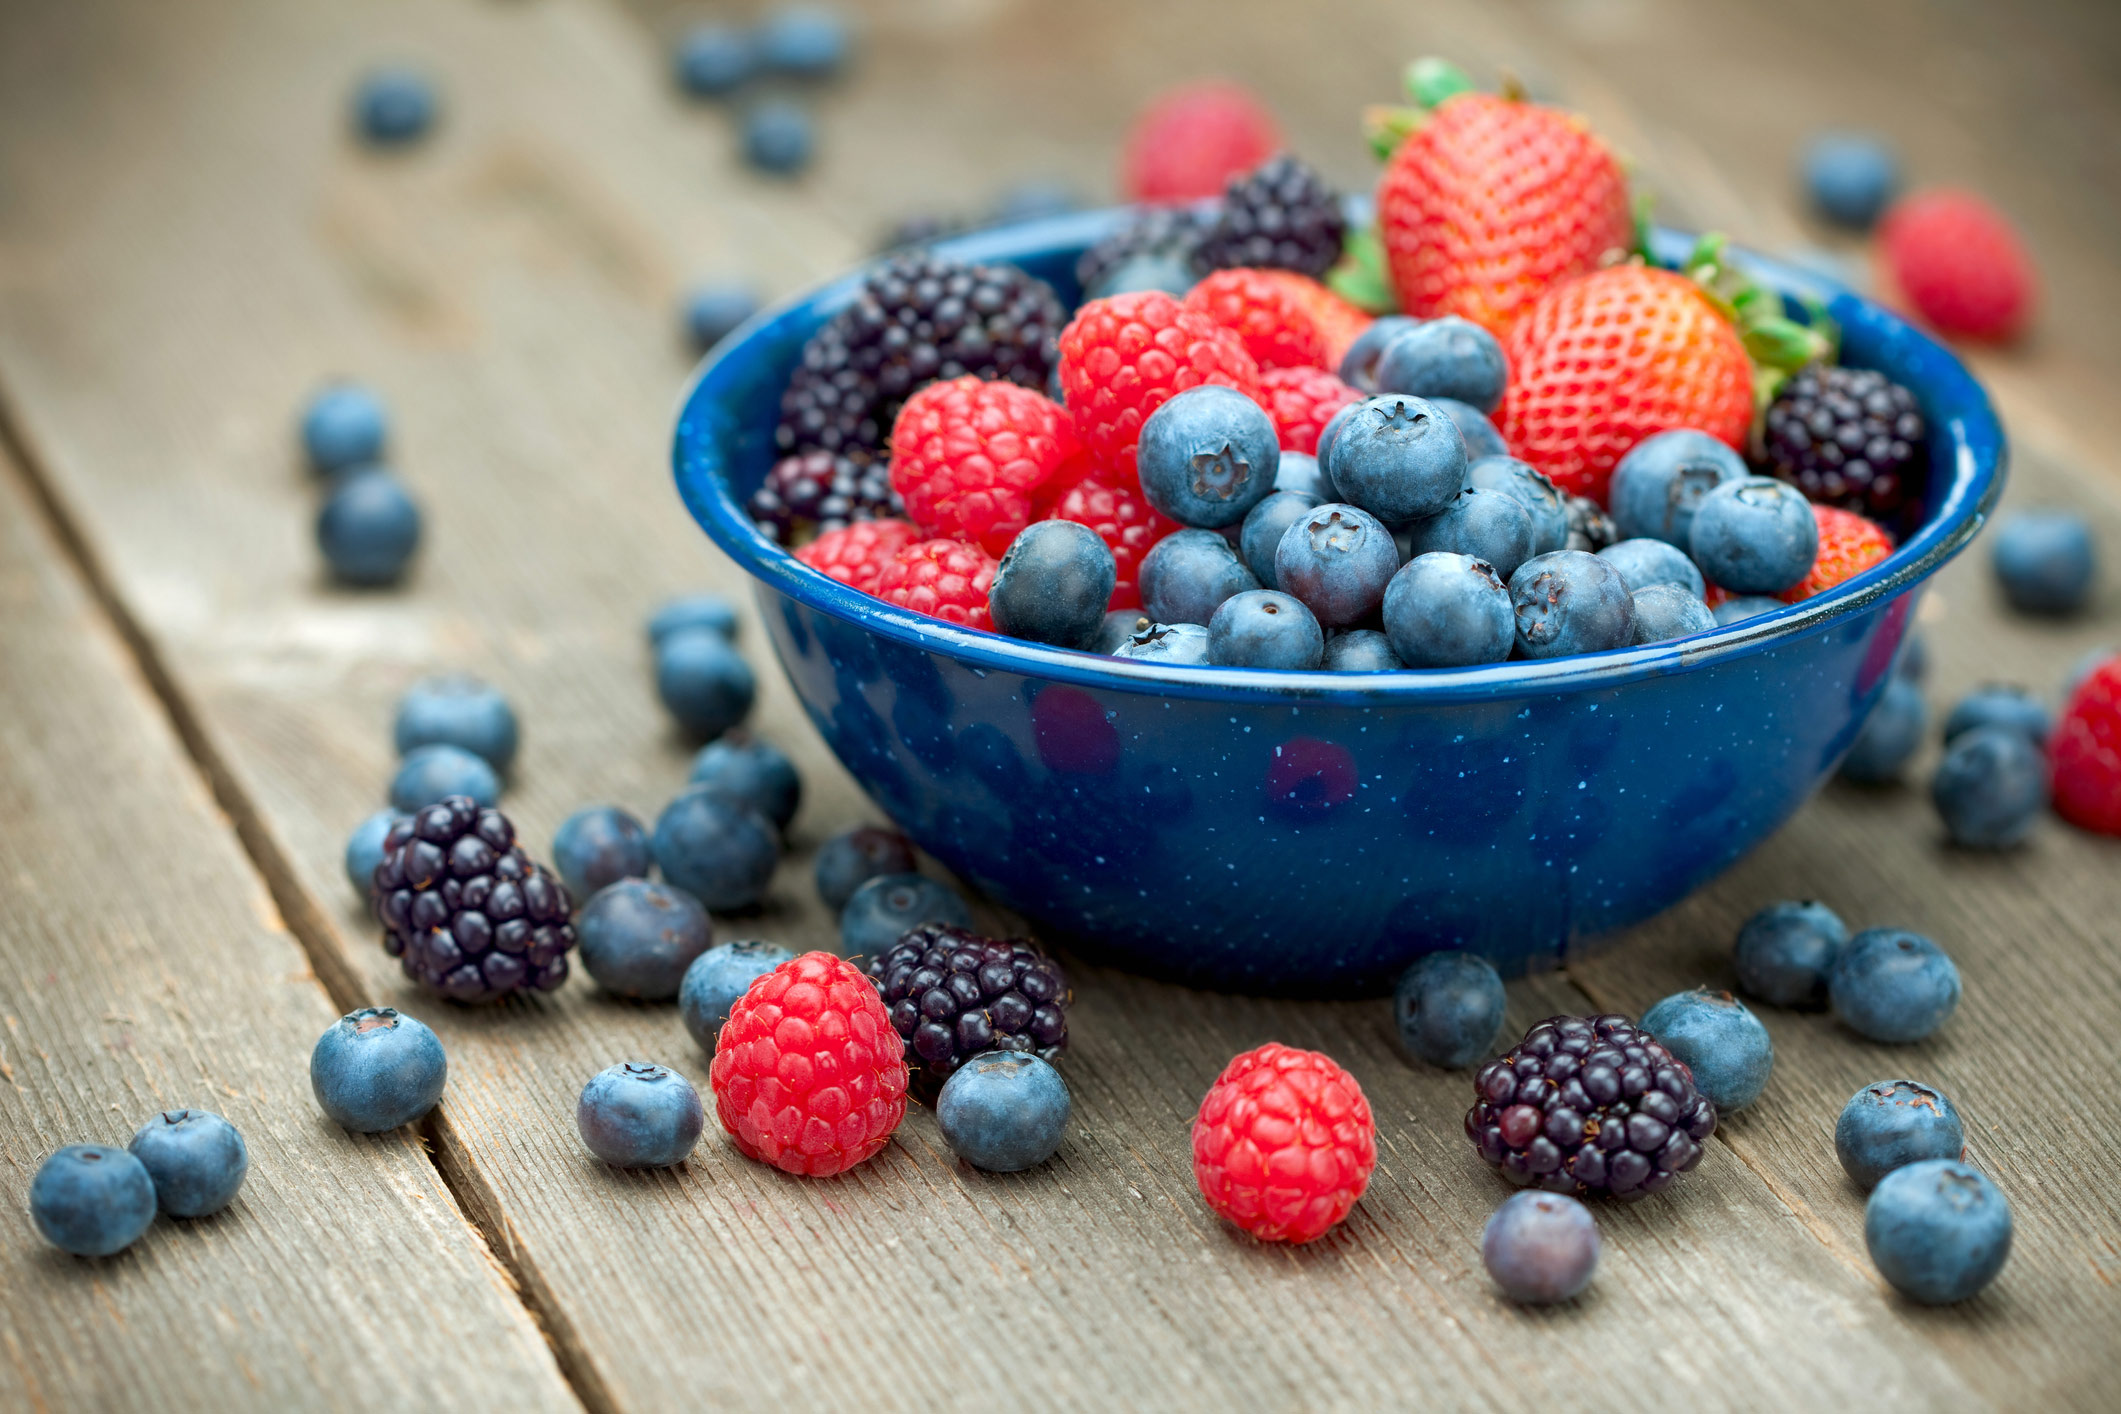 Top heart healthy foods: berries